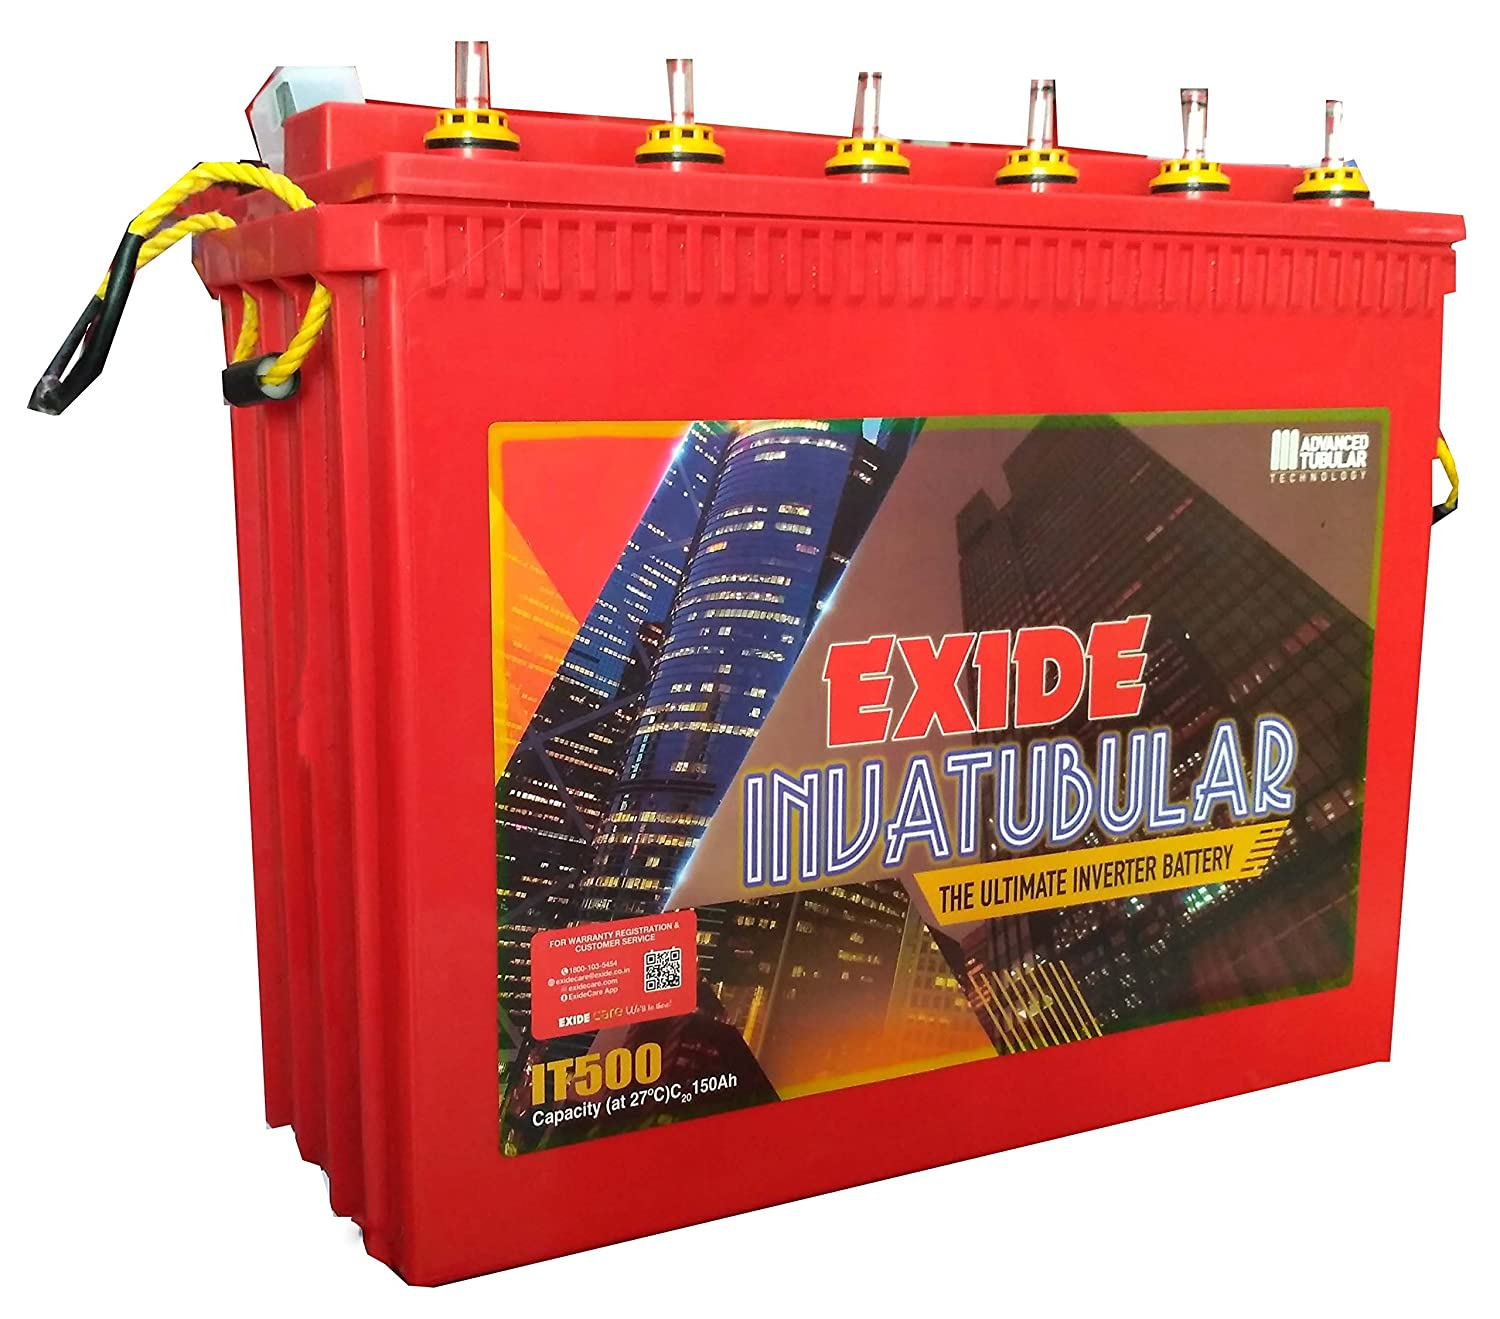 Exide IT 500 Plus 150ah Battery